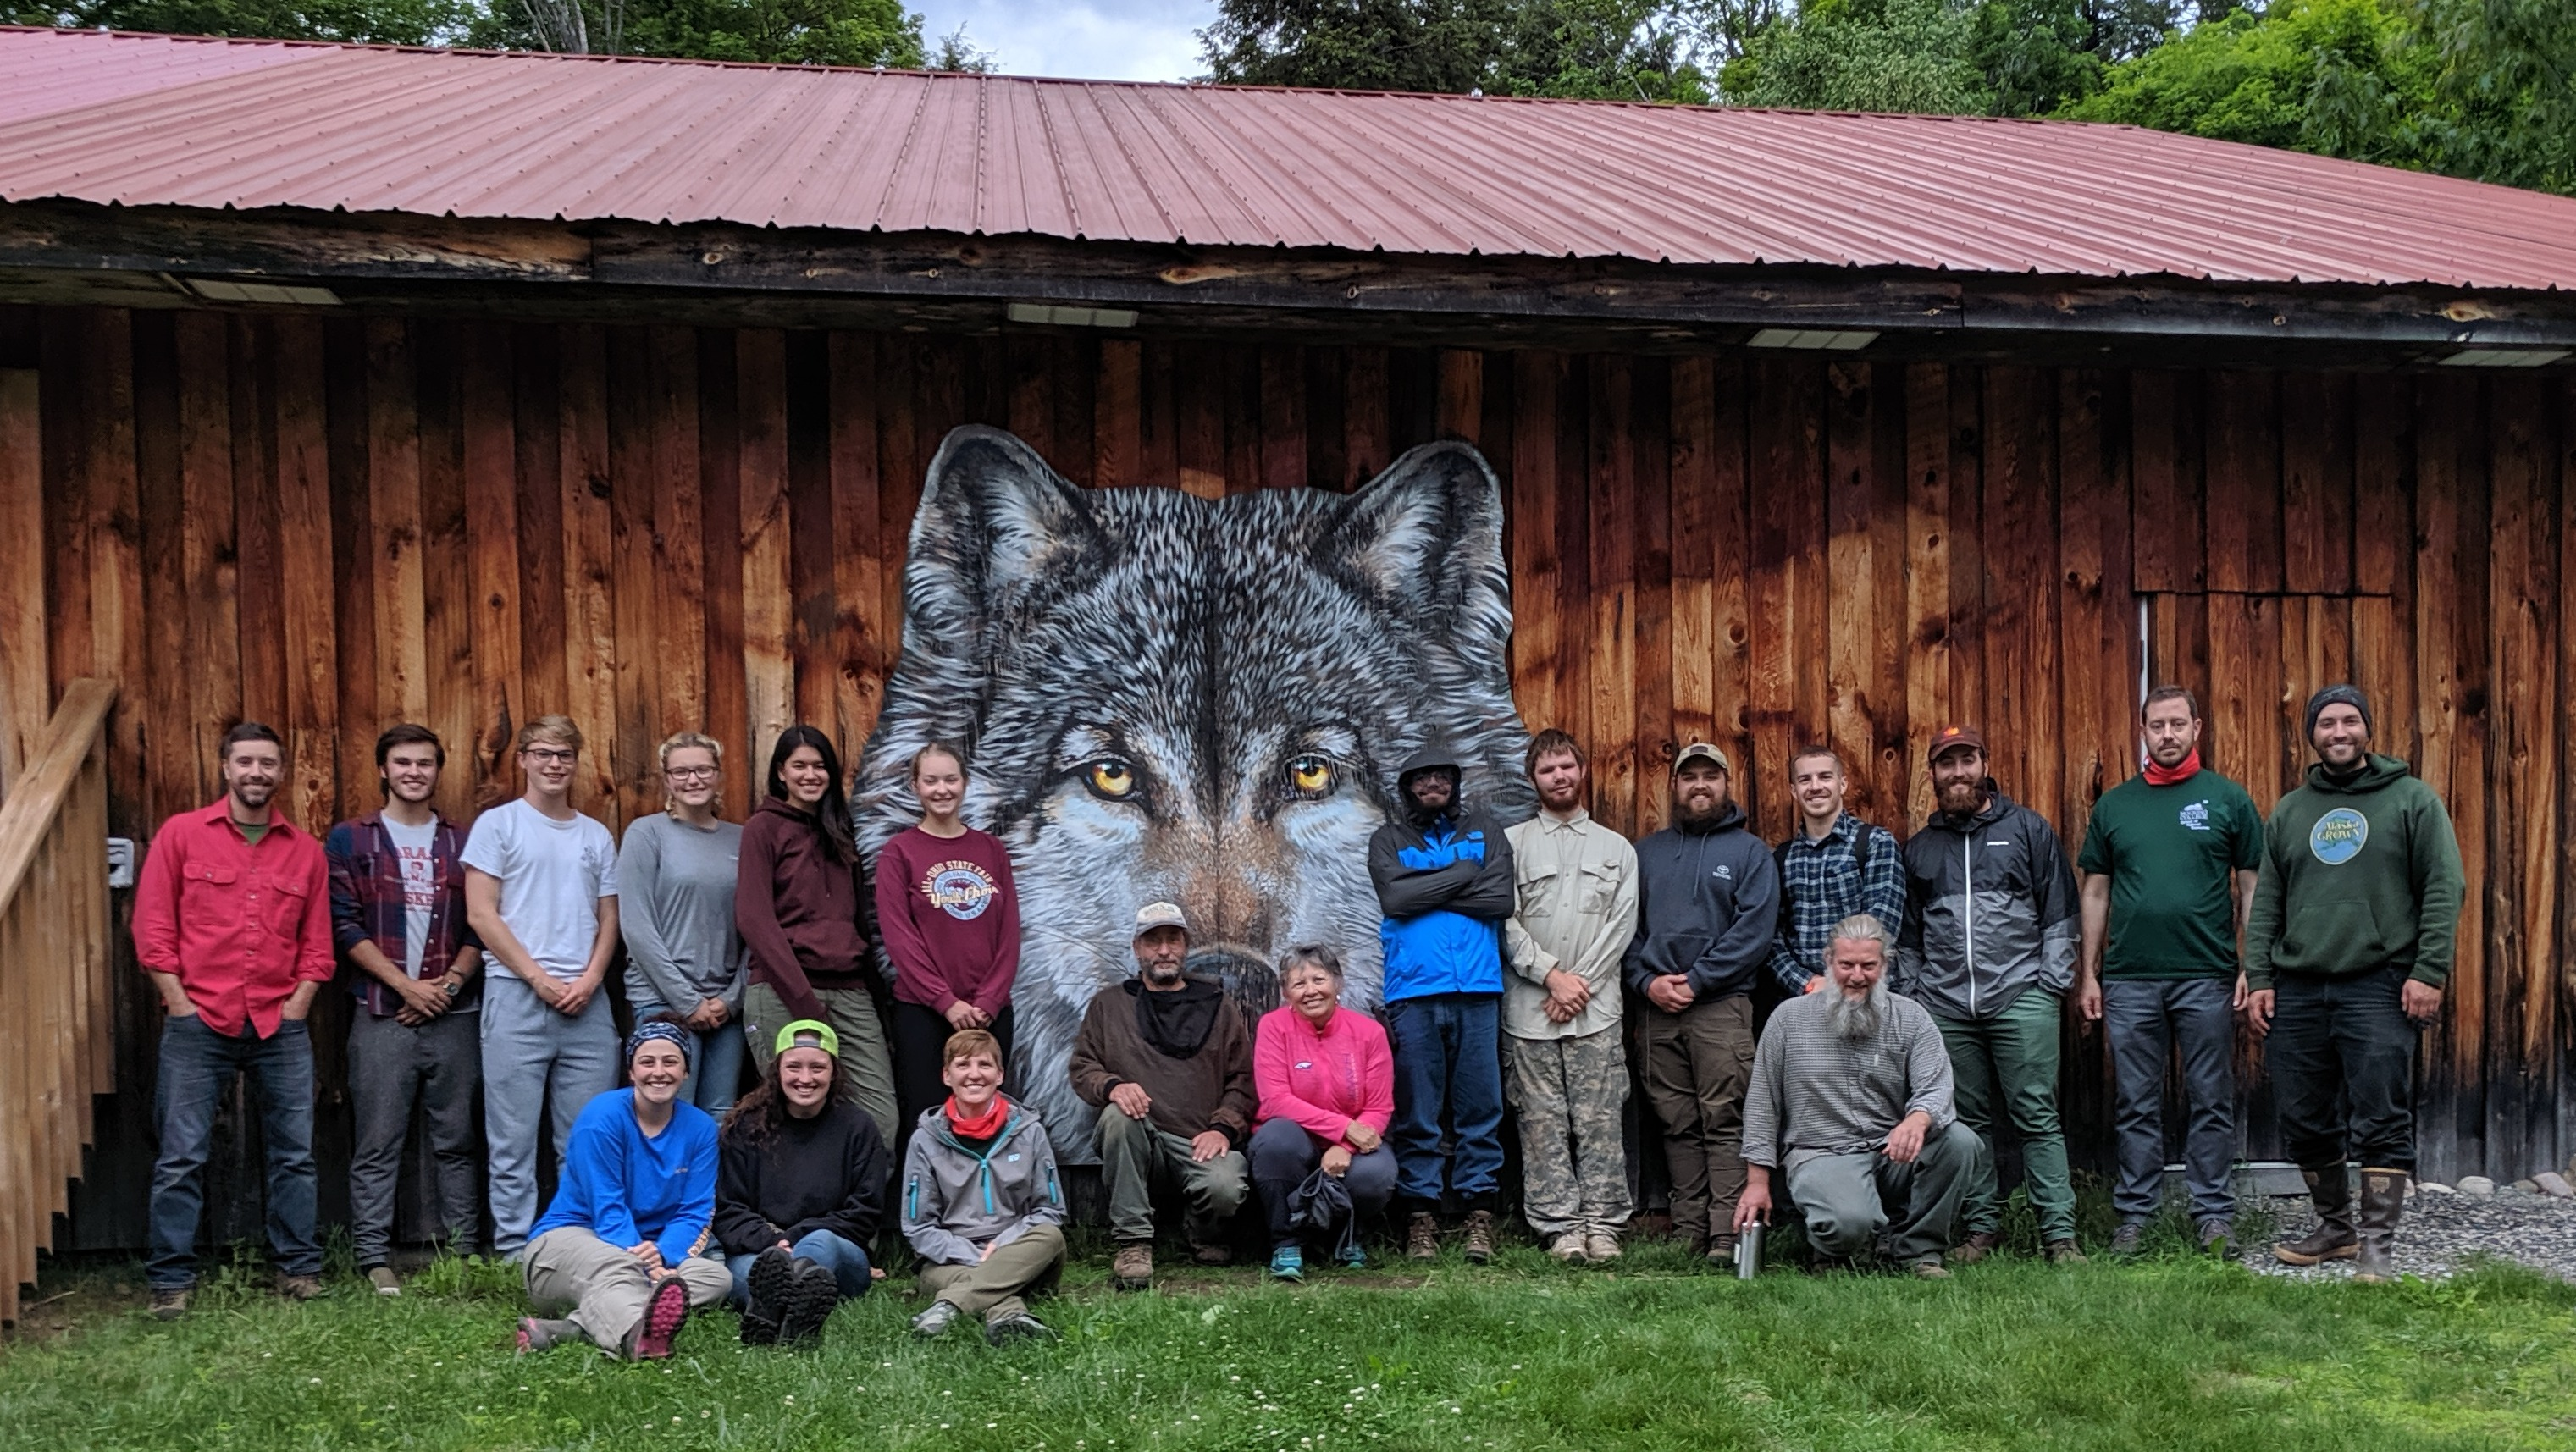 Students pose for photo in front of cabin at Haliburton Forest | Hocking College Celebrates 25 Years of Partnership with Haliburton Forest